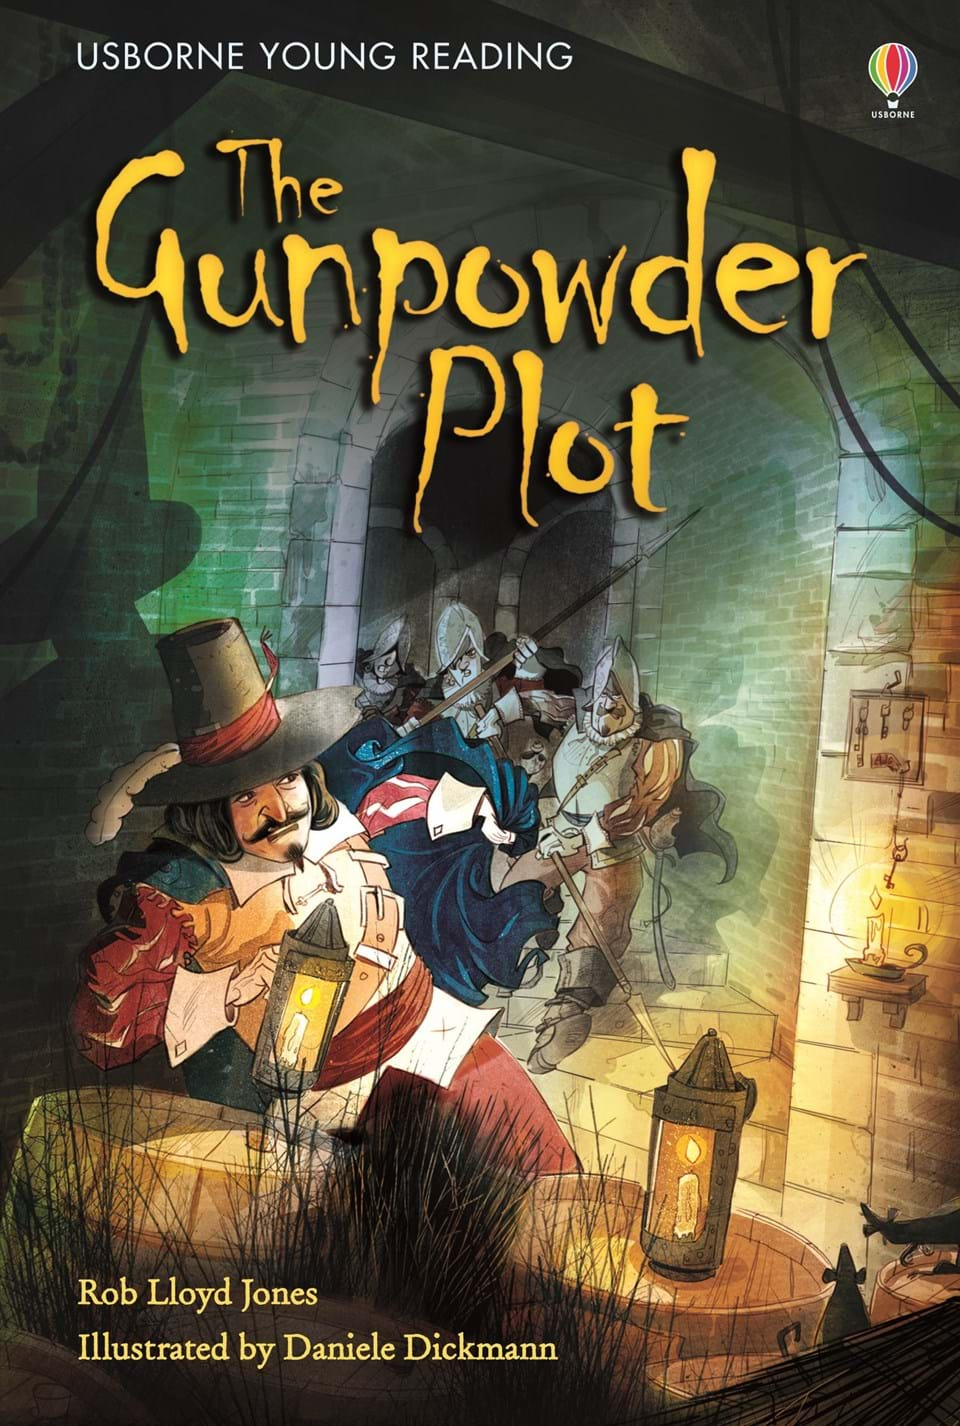 gunpowder plot Remember, remember, the 5th of november the gunpowder treason and plot i know of no reason why gunpowder treason should ever be forgot guy fawkes, guy fawkes.